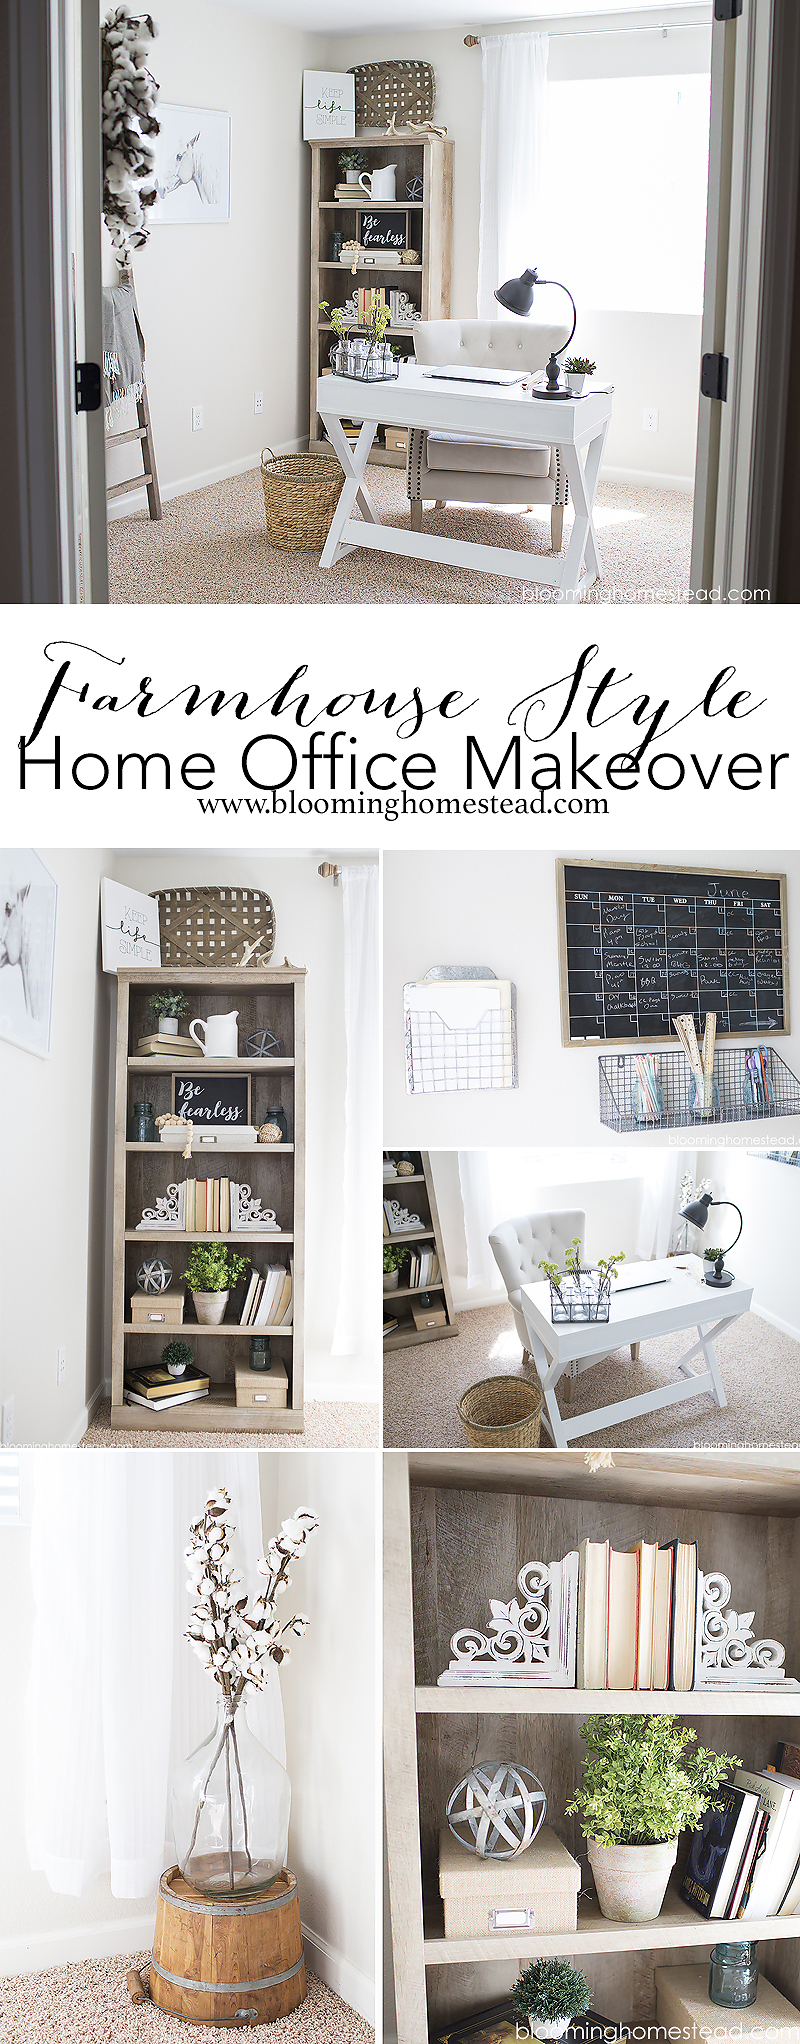 Create a farmhouse style home office using simple supplies from Walmart!